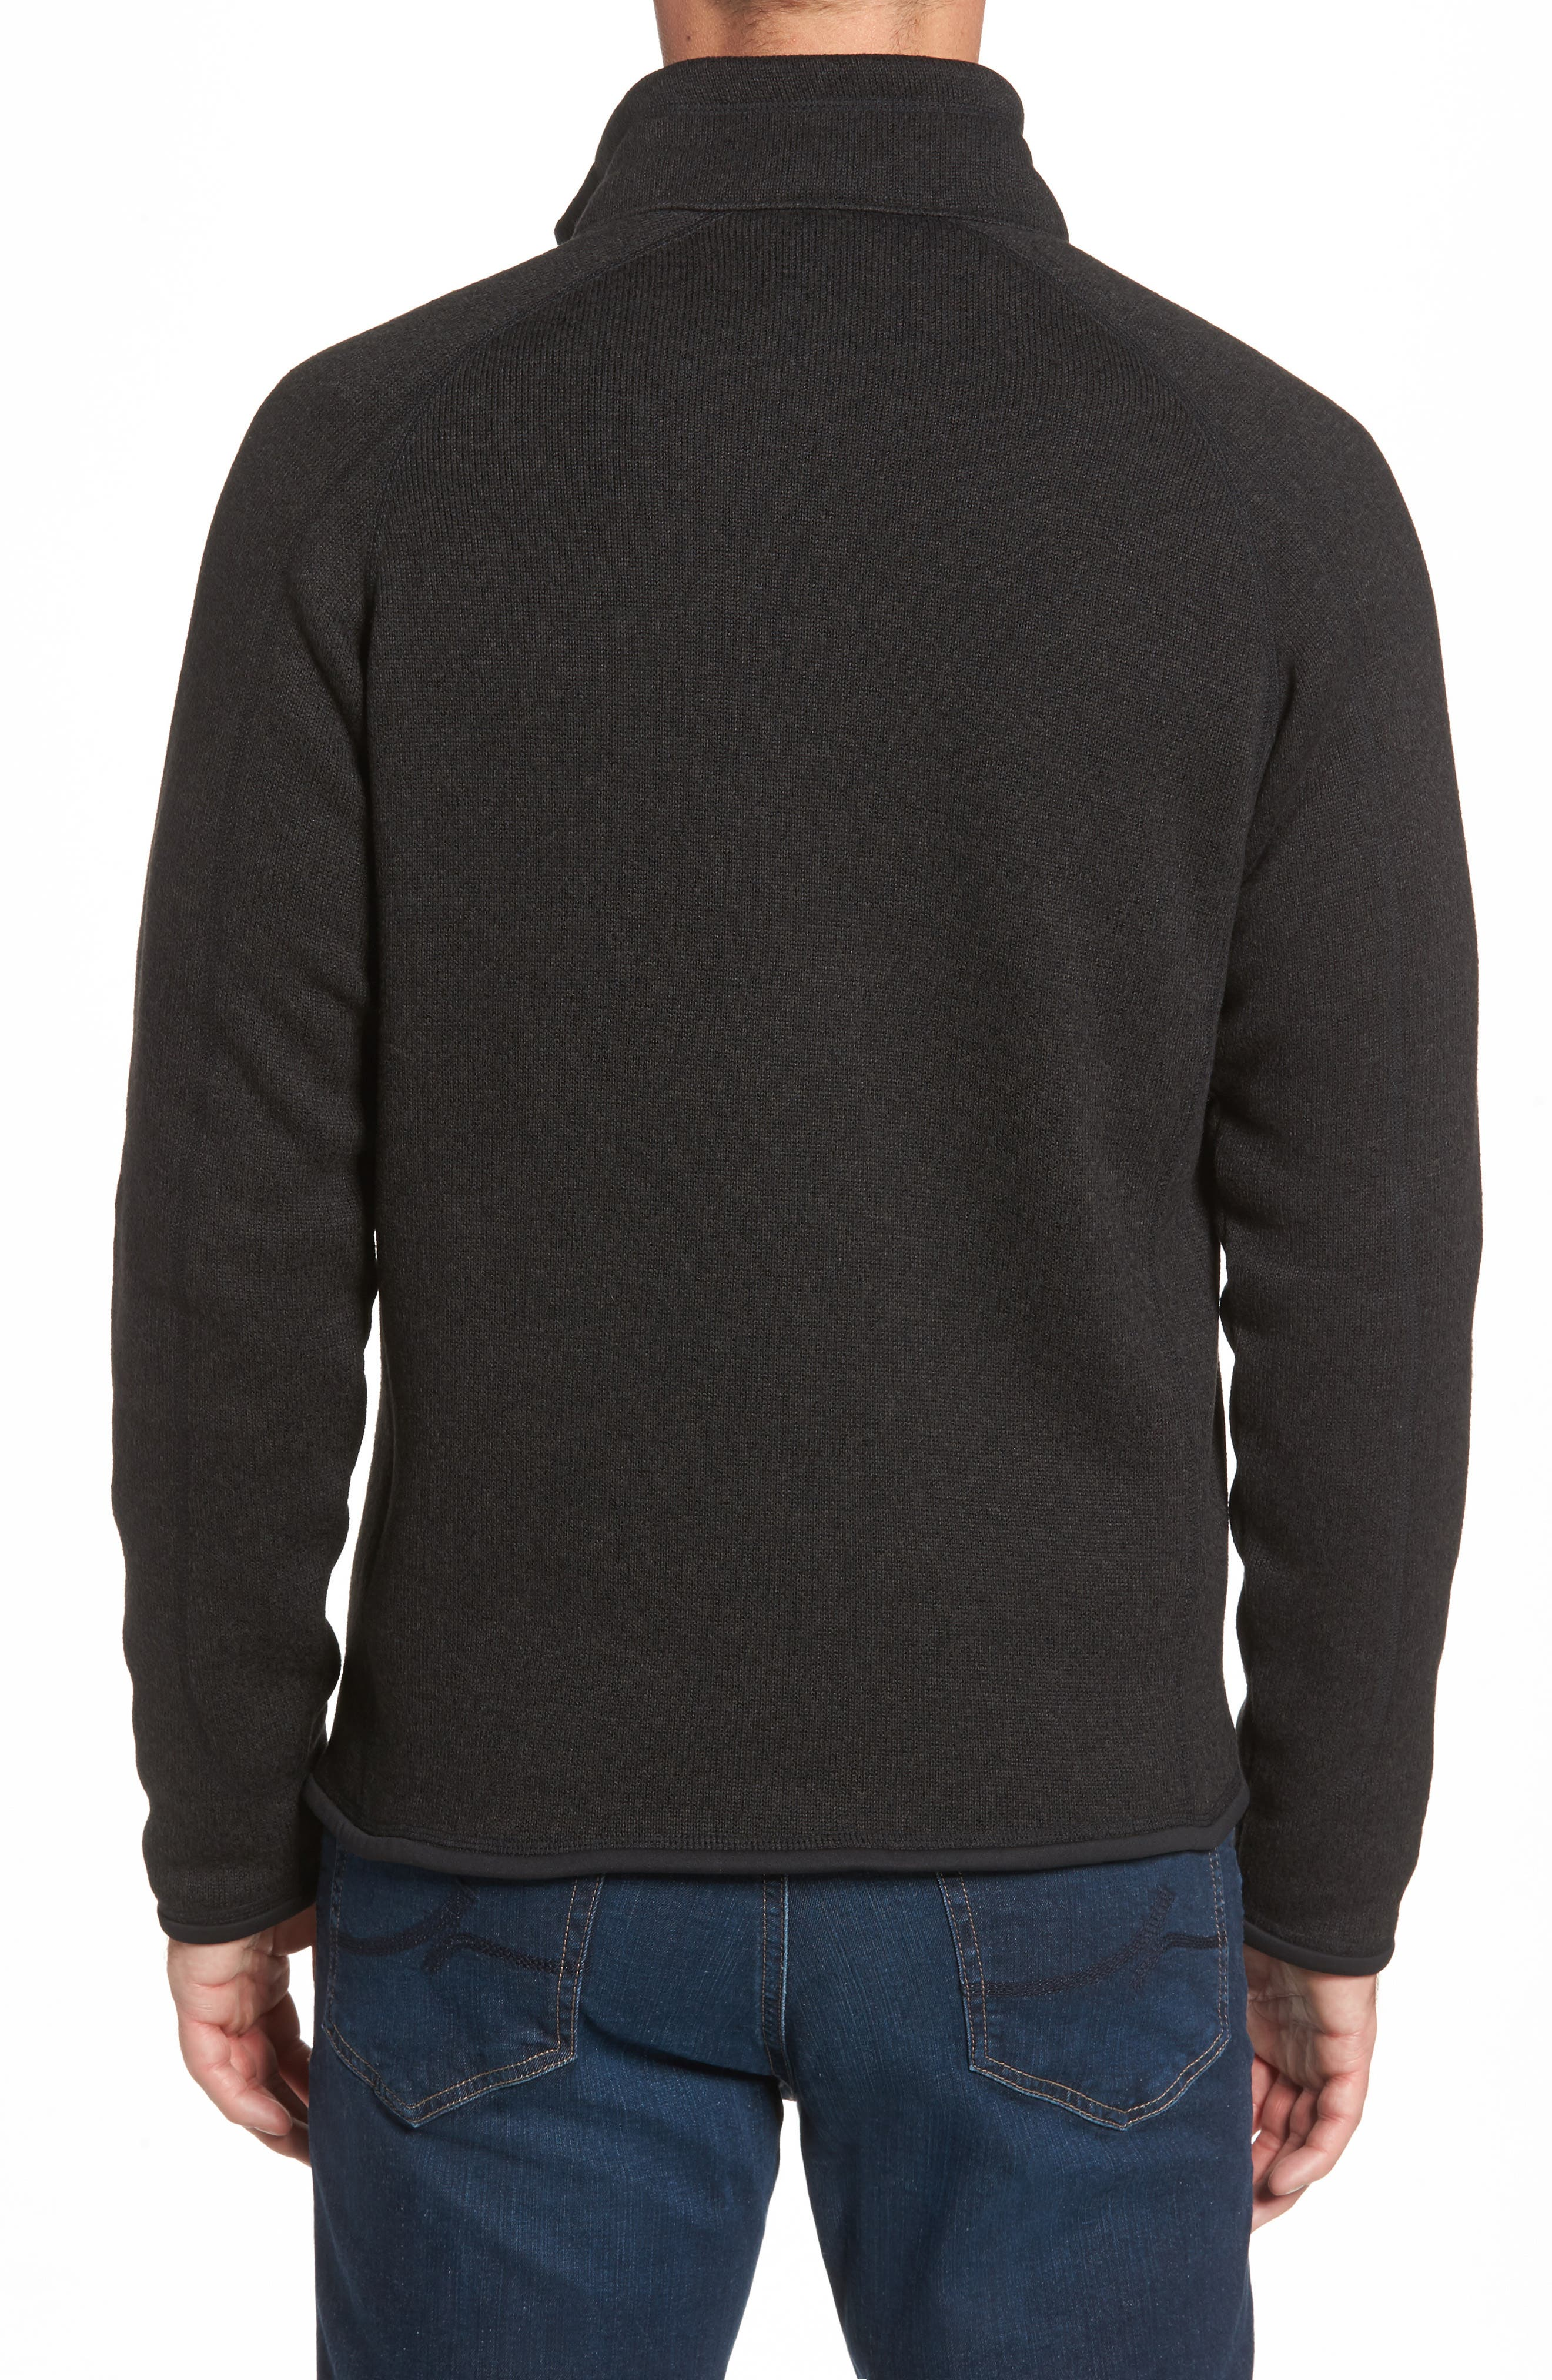 PATAGONIA, Better Sweater Zip Front Jacket, Alternate thumbnail 2, color, BLACK